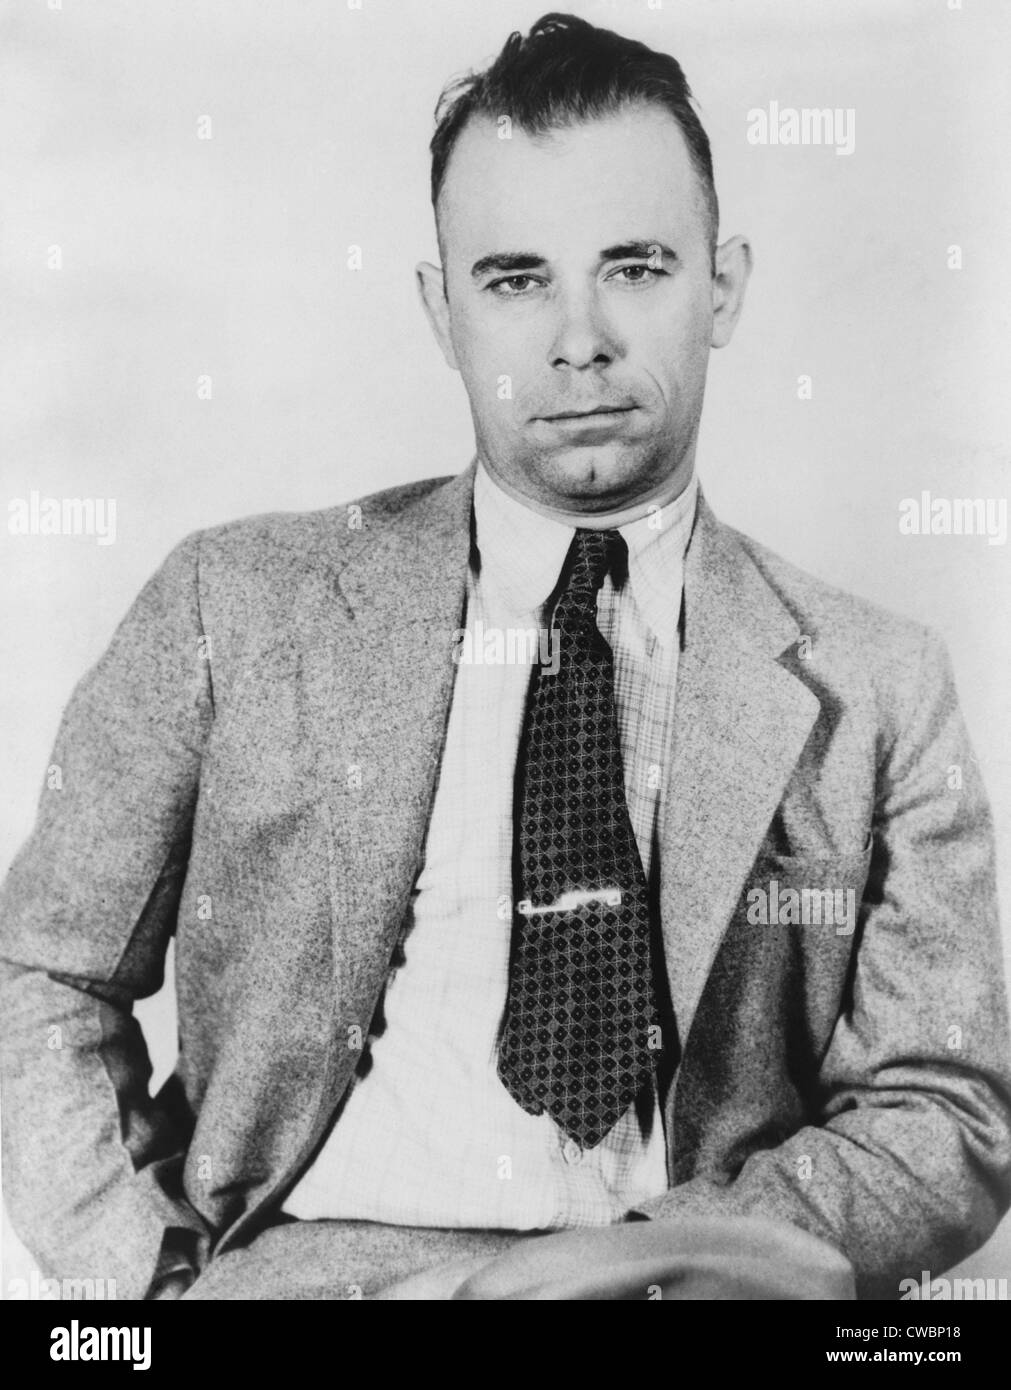 John Dillinger (1903-1934), famous bank robber, in police custody in September 1933, would soon be freed by five - Stock Image